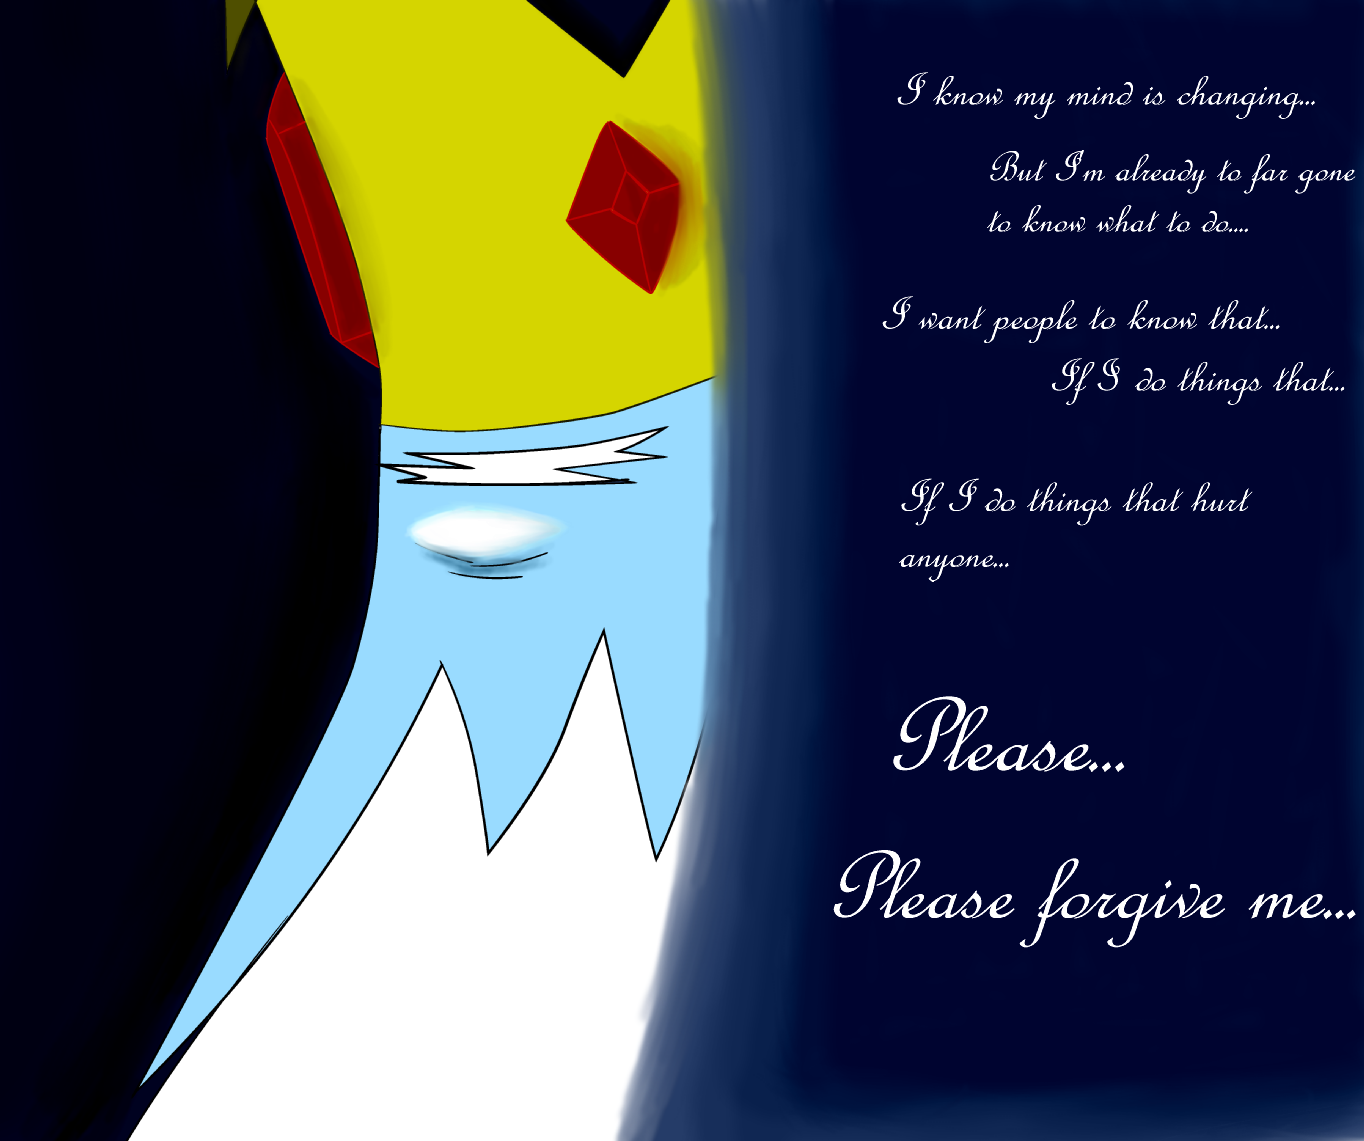 Ice King quote background